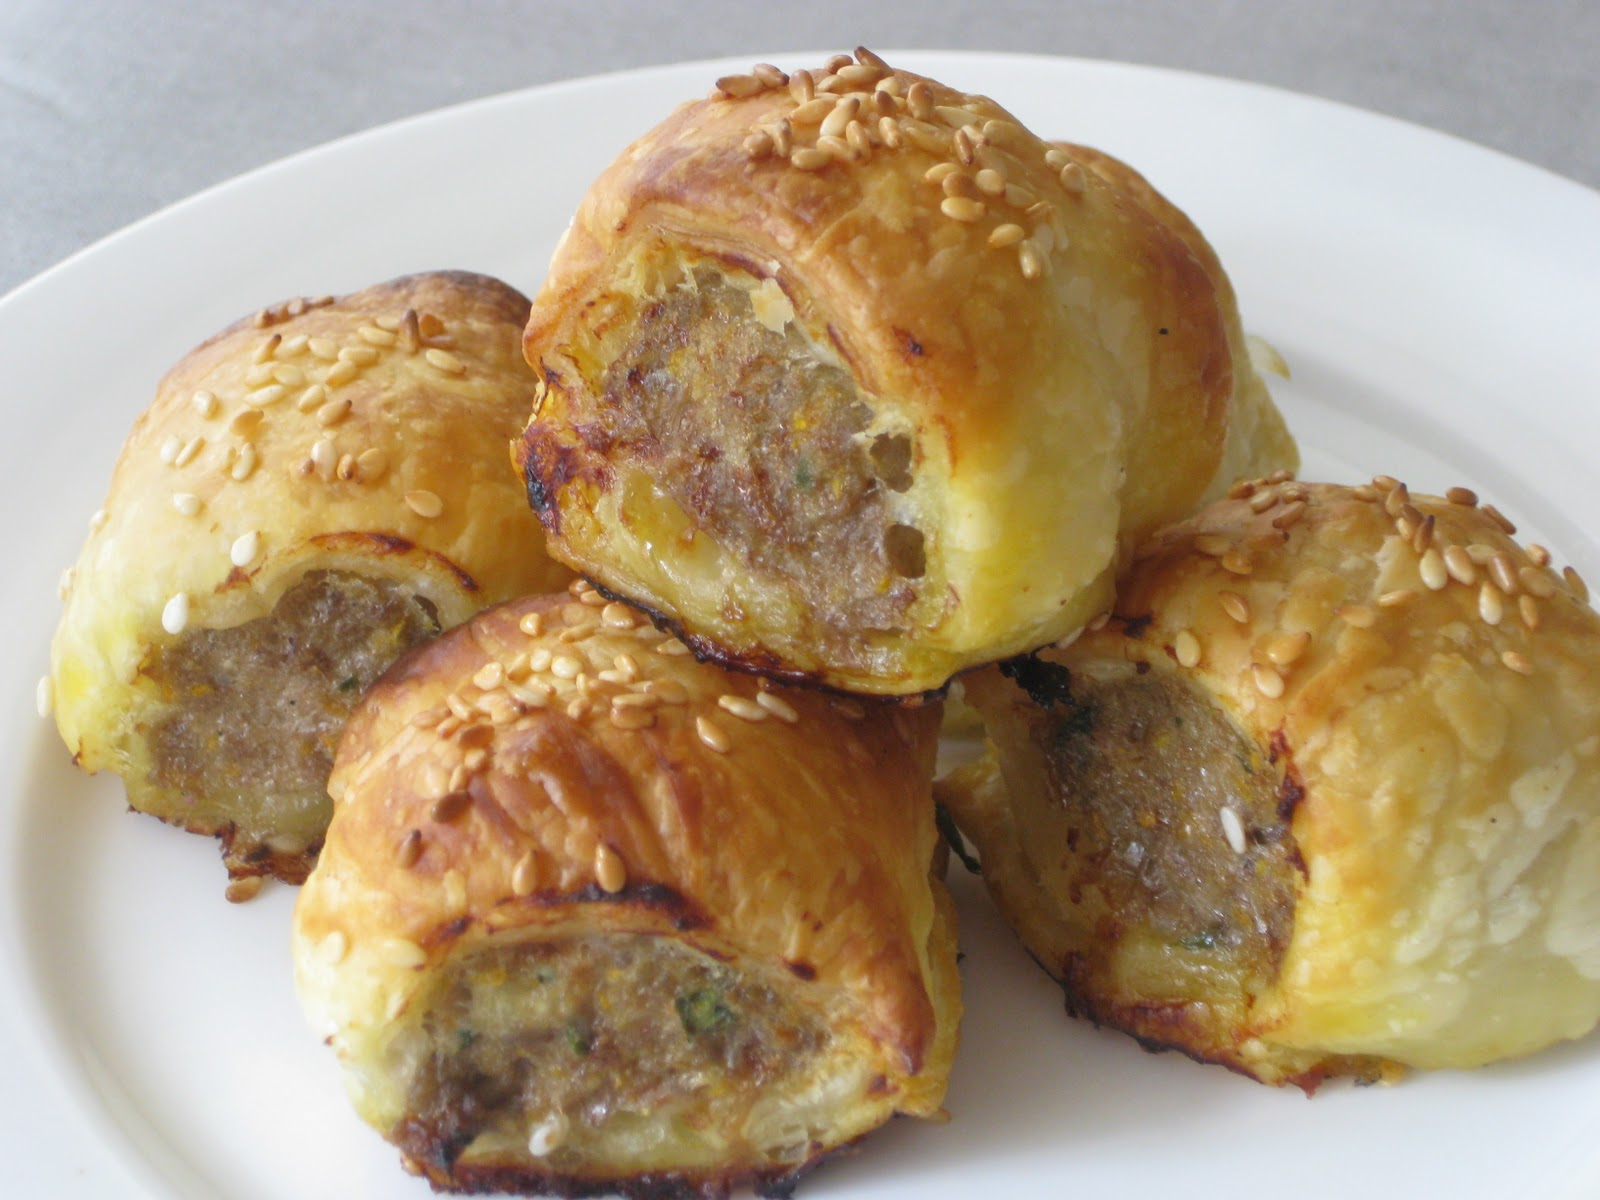 I have in the past been partial to a sausage roll or two on long runs...